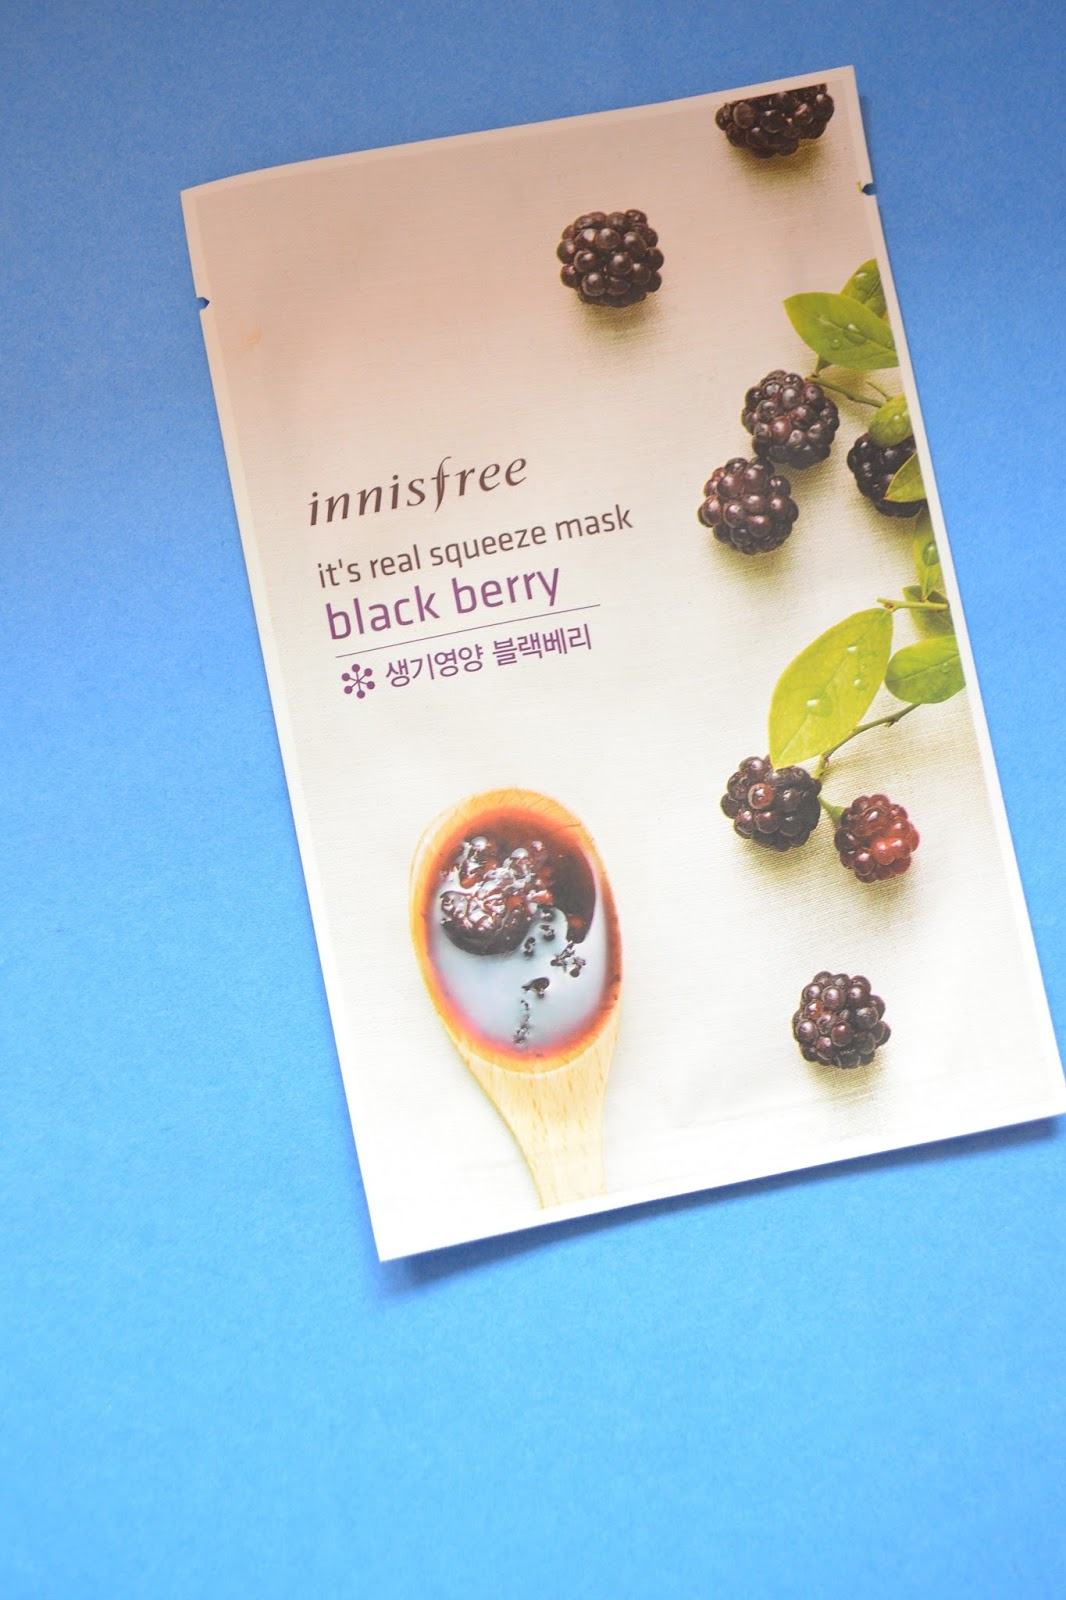 Compact Matters Innisfree Its Real Squeeze Mask Review Black Berry Blackberry Helps Rejuvenate The Skin Since It Has A Lot Of Anti Oxidants